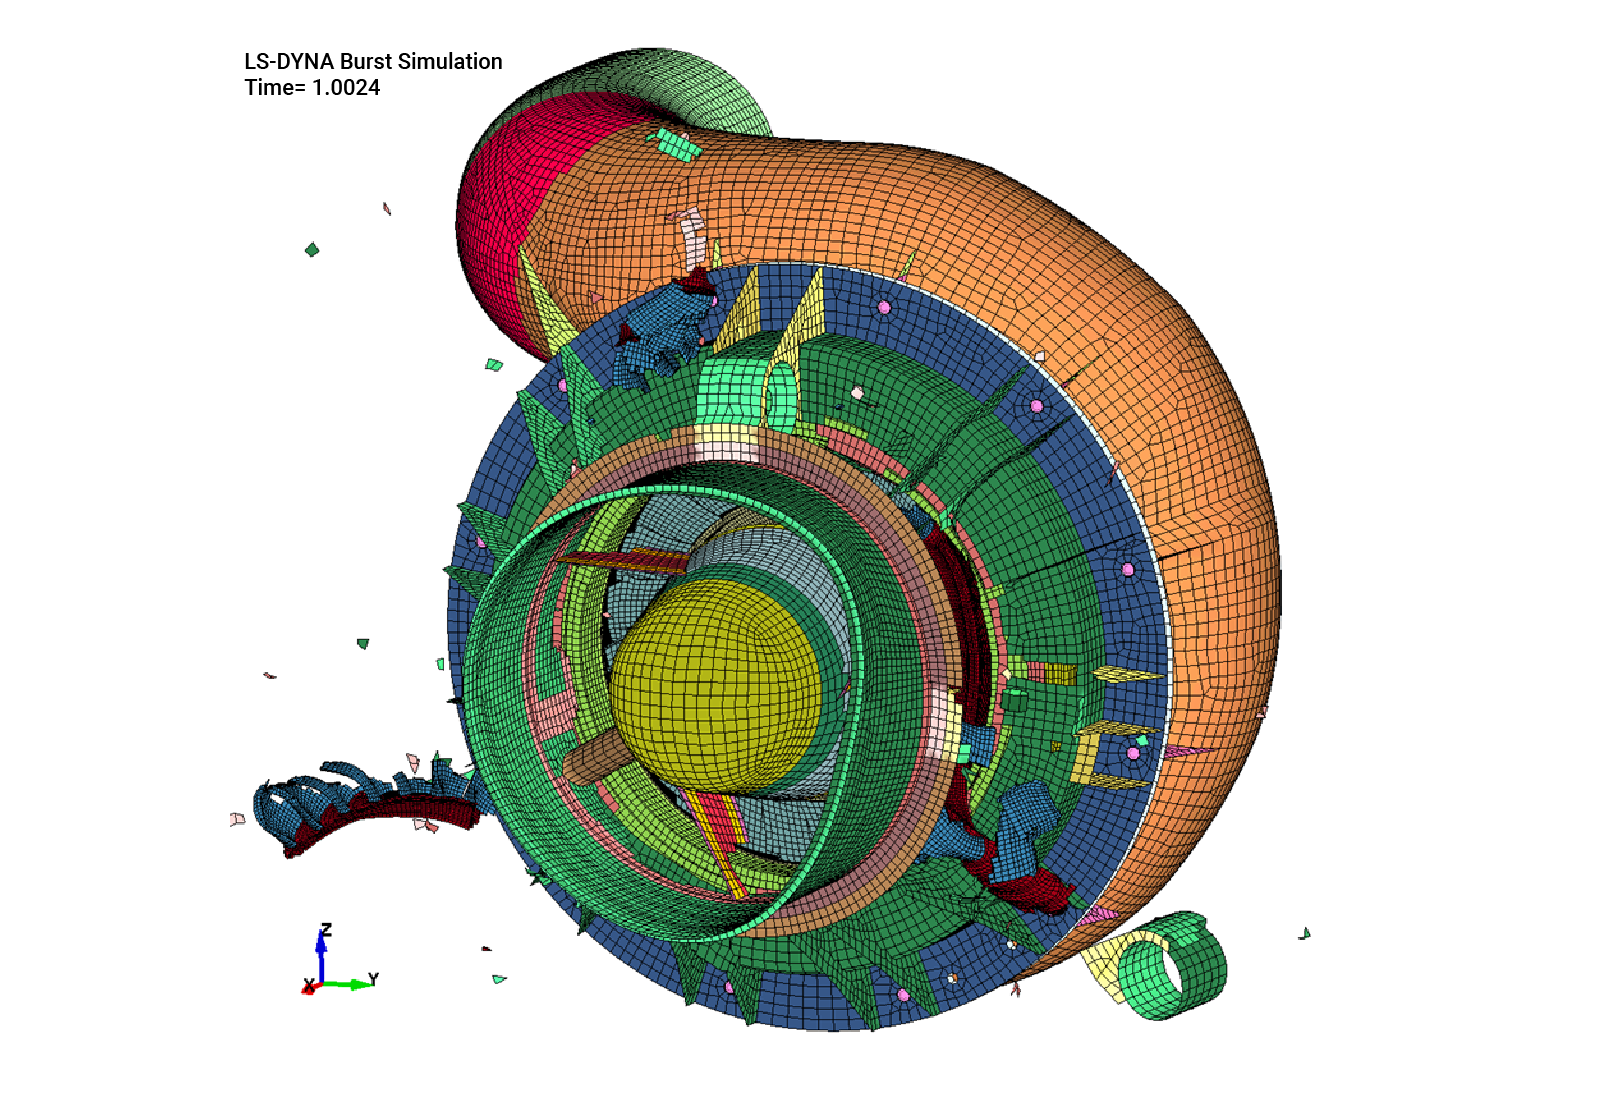 Figure 5: The LS-DYNA simulation was validated against experimental data through the comparison of blade fragments and damage done to the turbine housing.